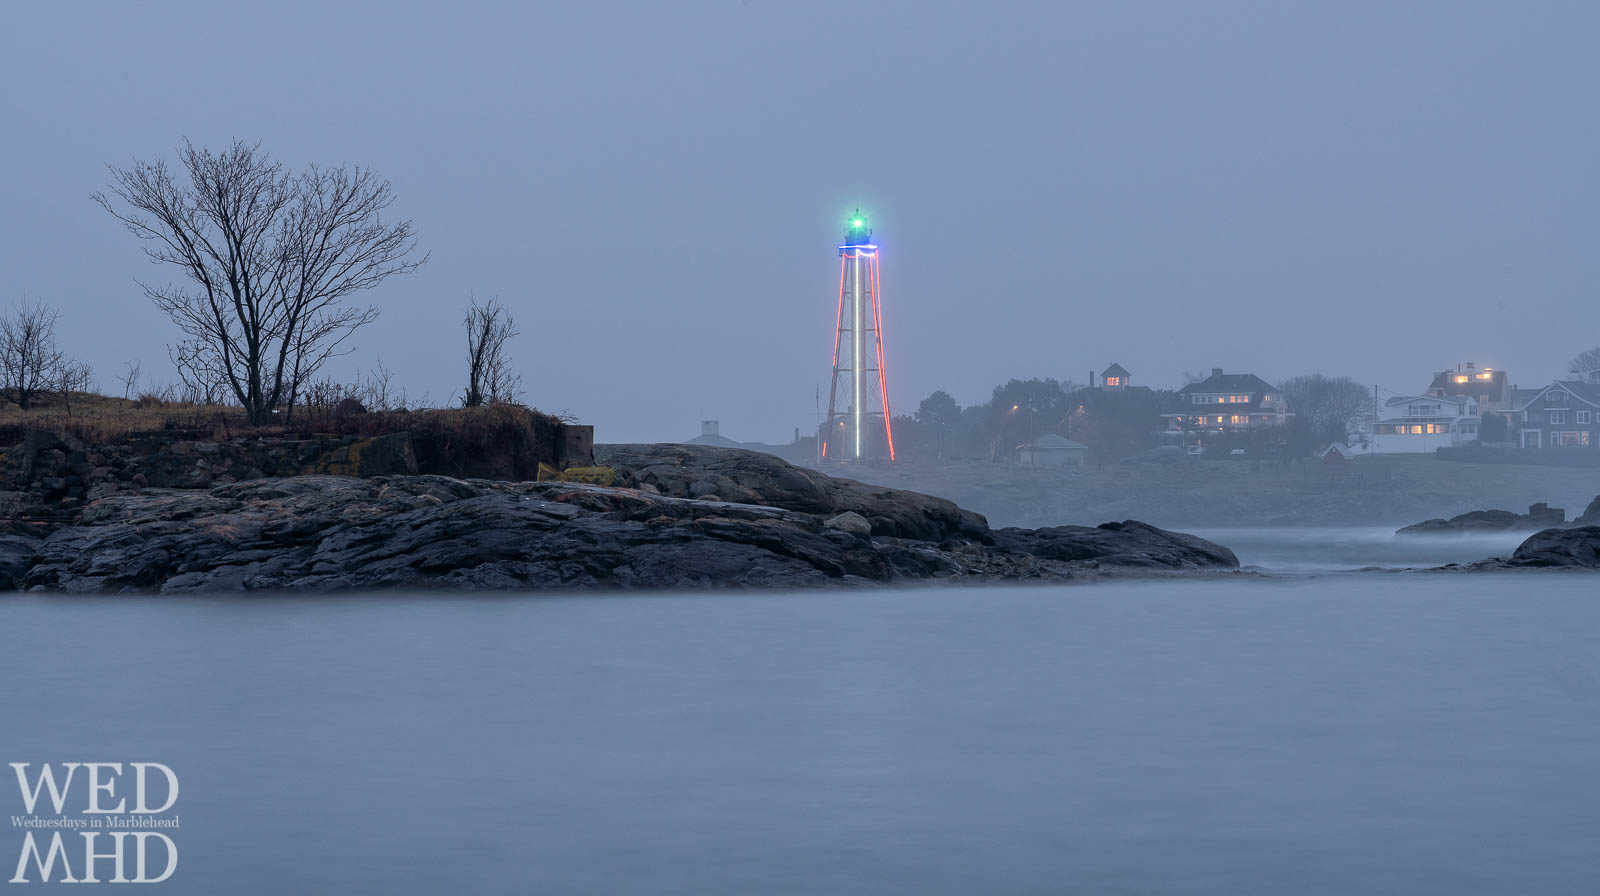 Marblehead Lighthouse stands as a beacon of light in the fog on an early December evening with strings of lights adding to the glow of the lighthouse